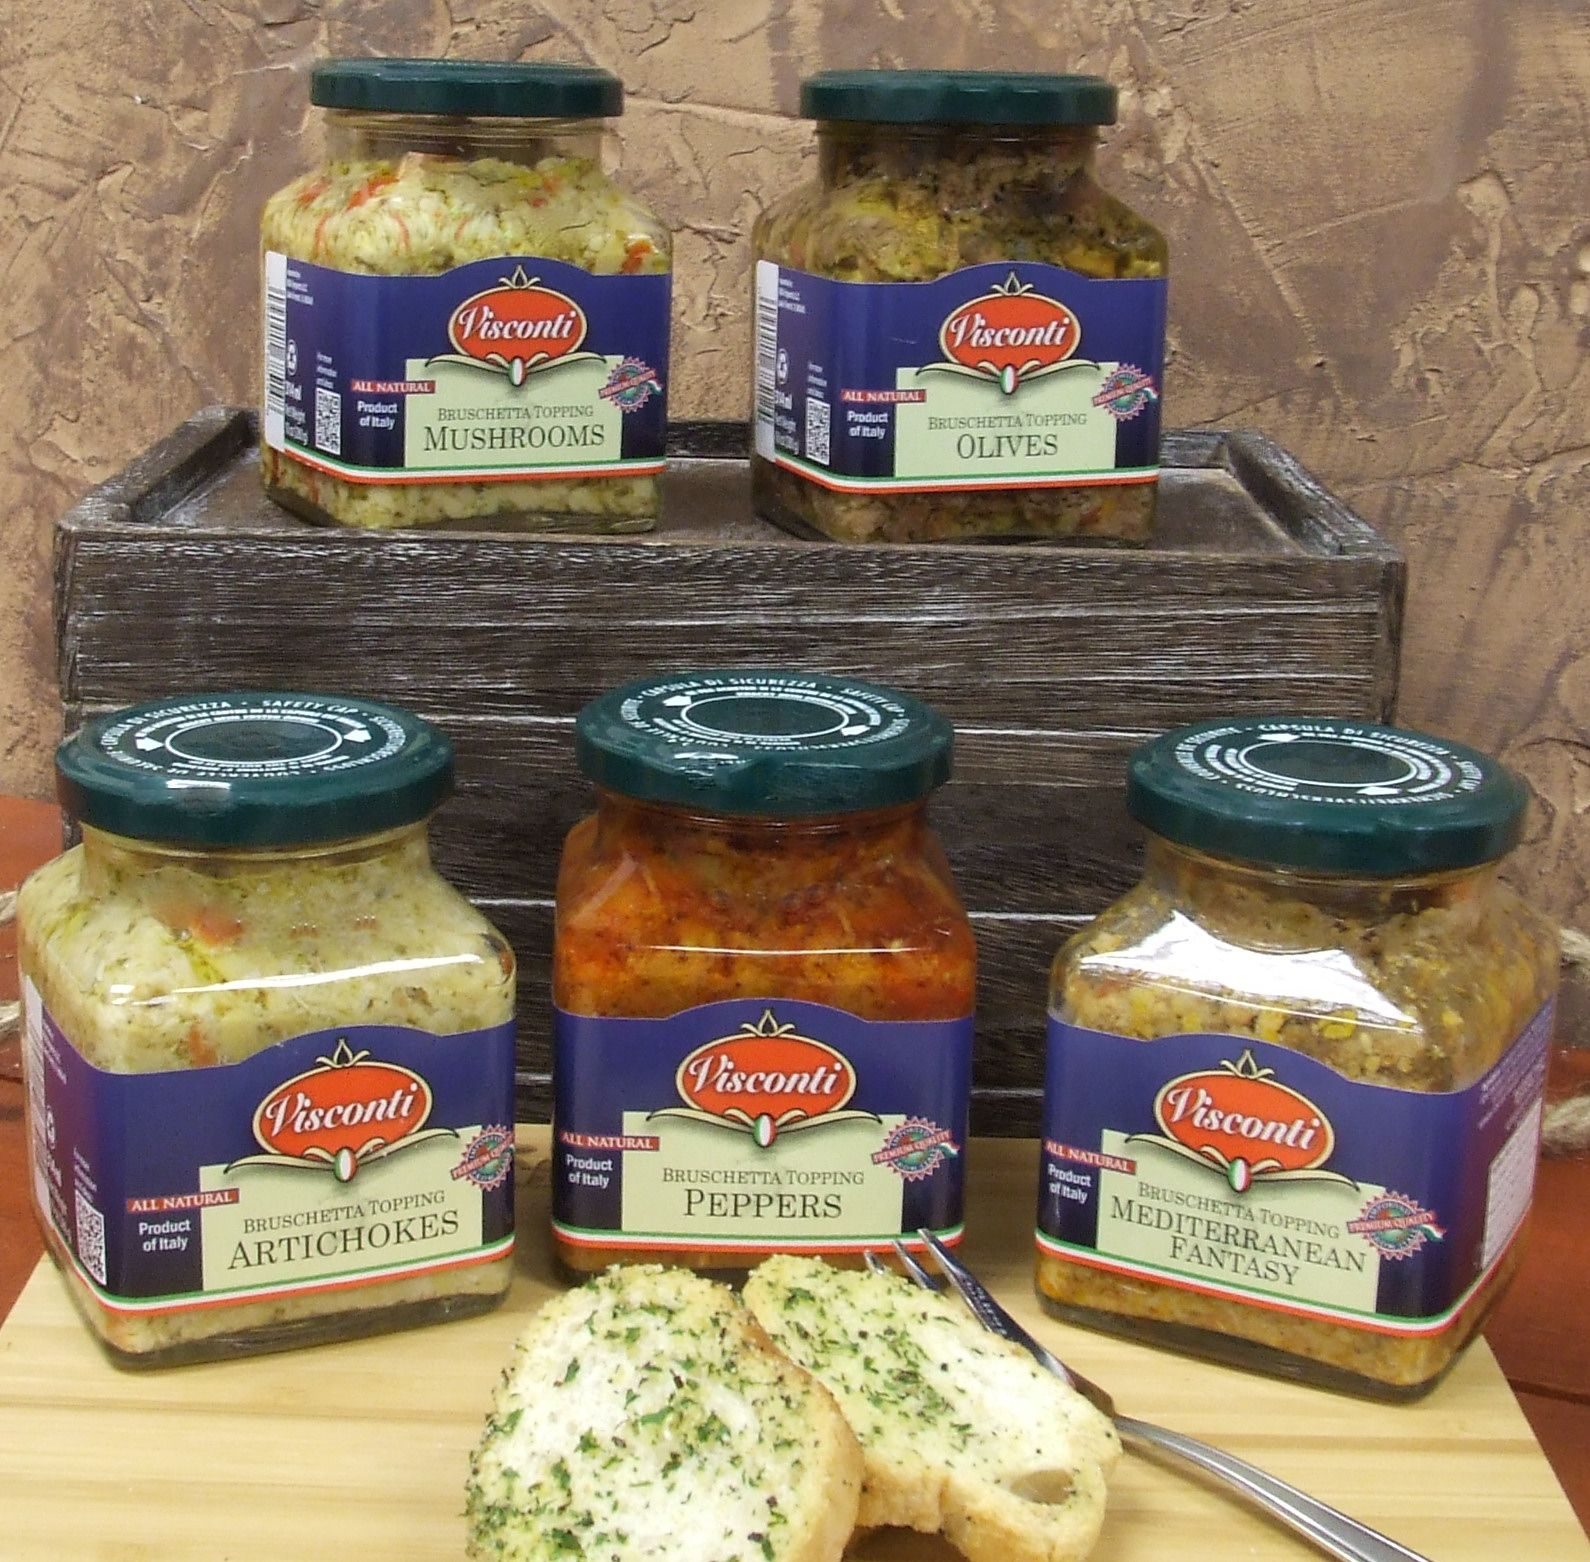 Imported  Bruschetta Toppings from Italy in 5 flavors!